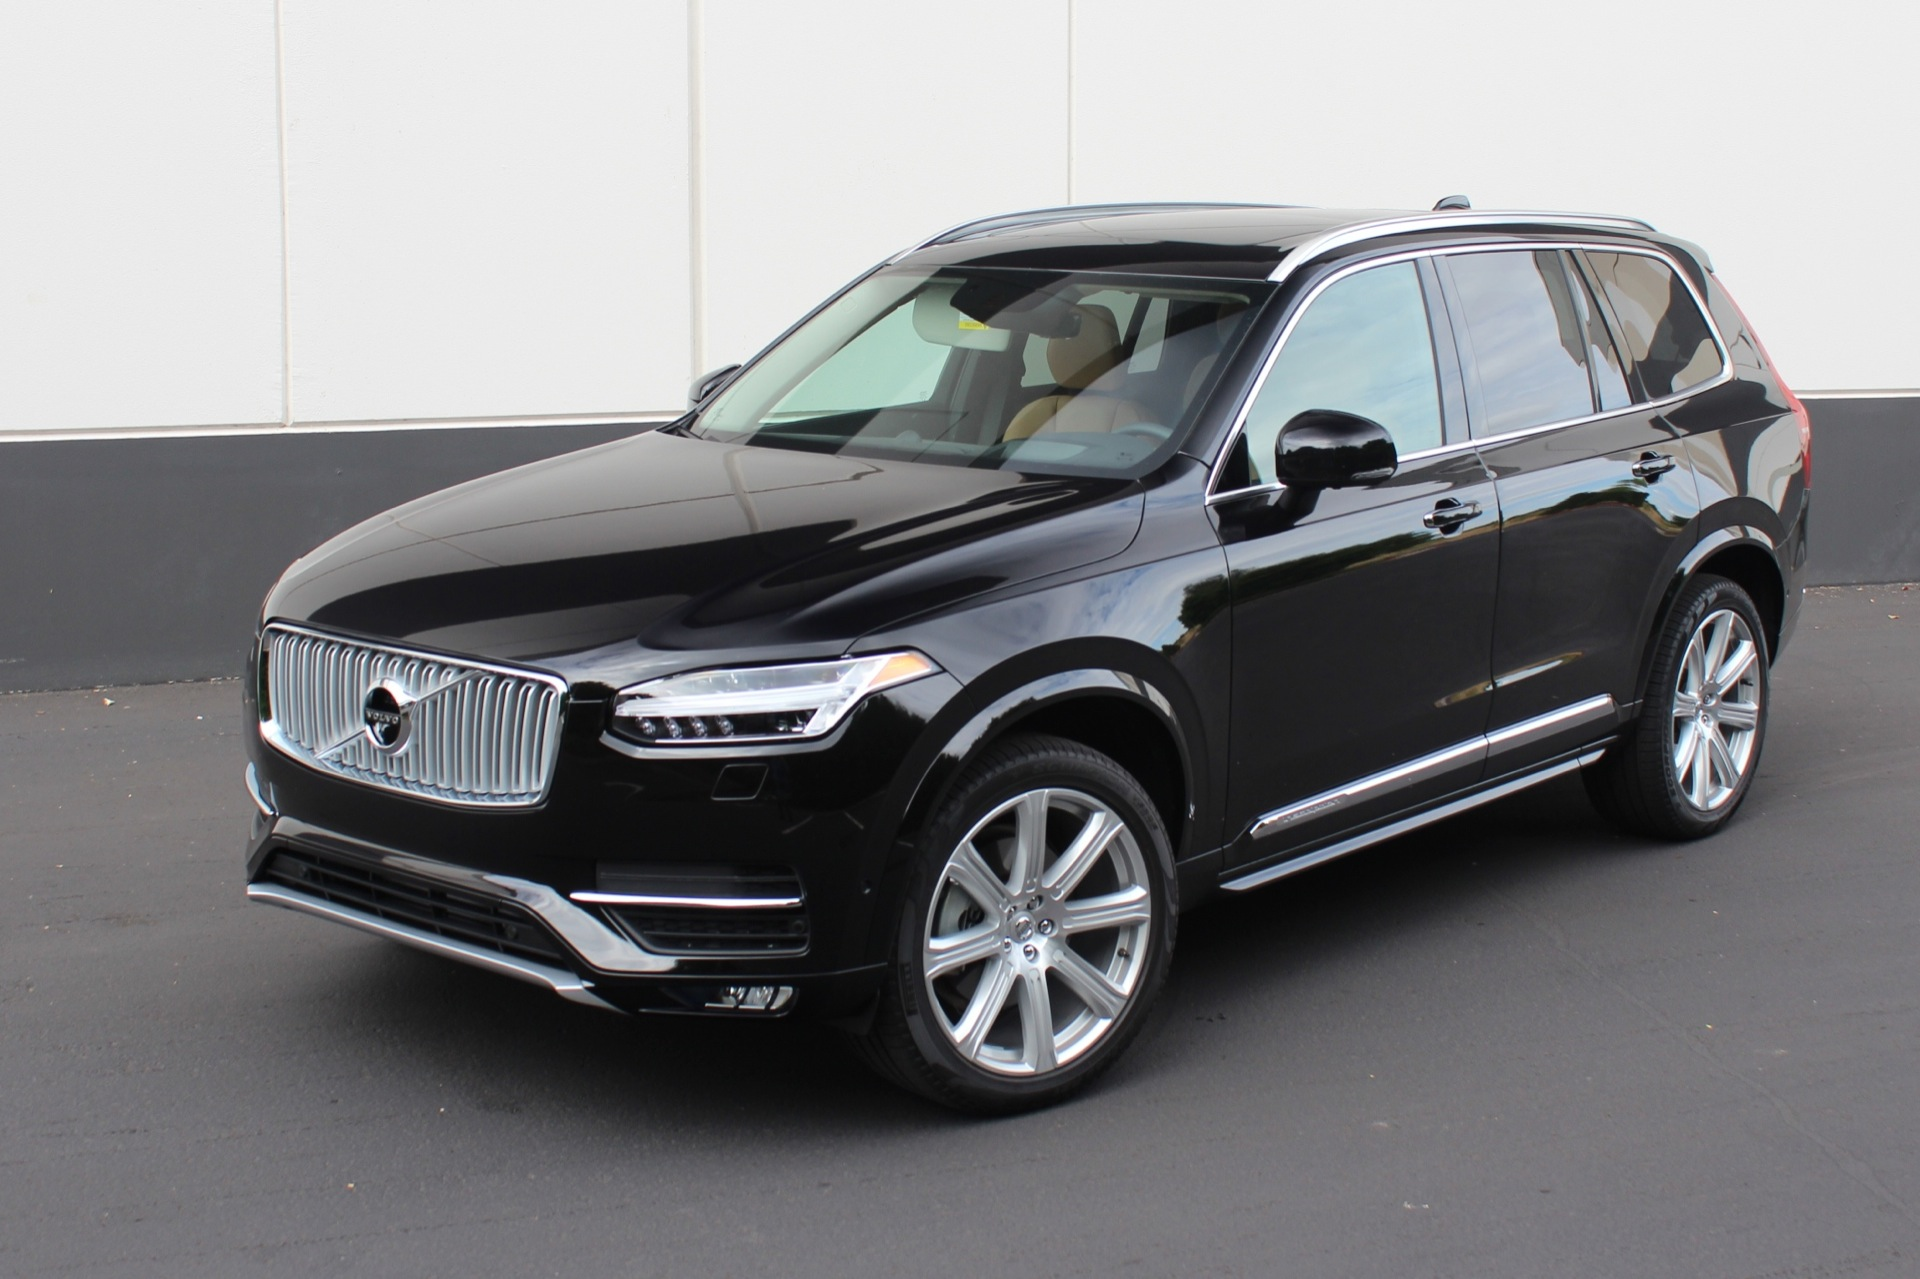 Land Rover Houston North >> 2016 Volvo XC90 Features Review - The Car Connection